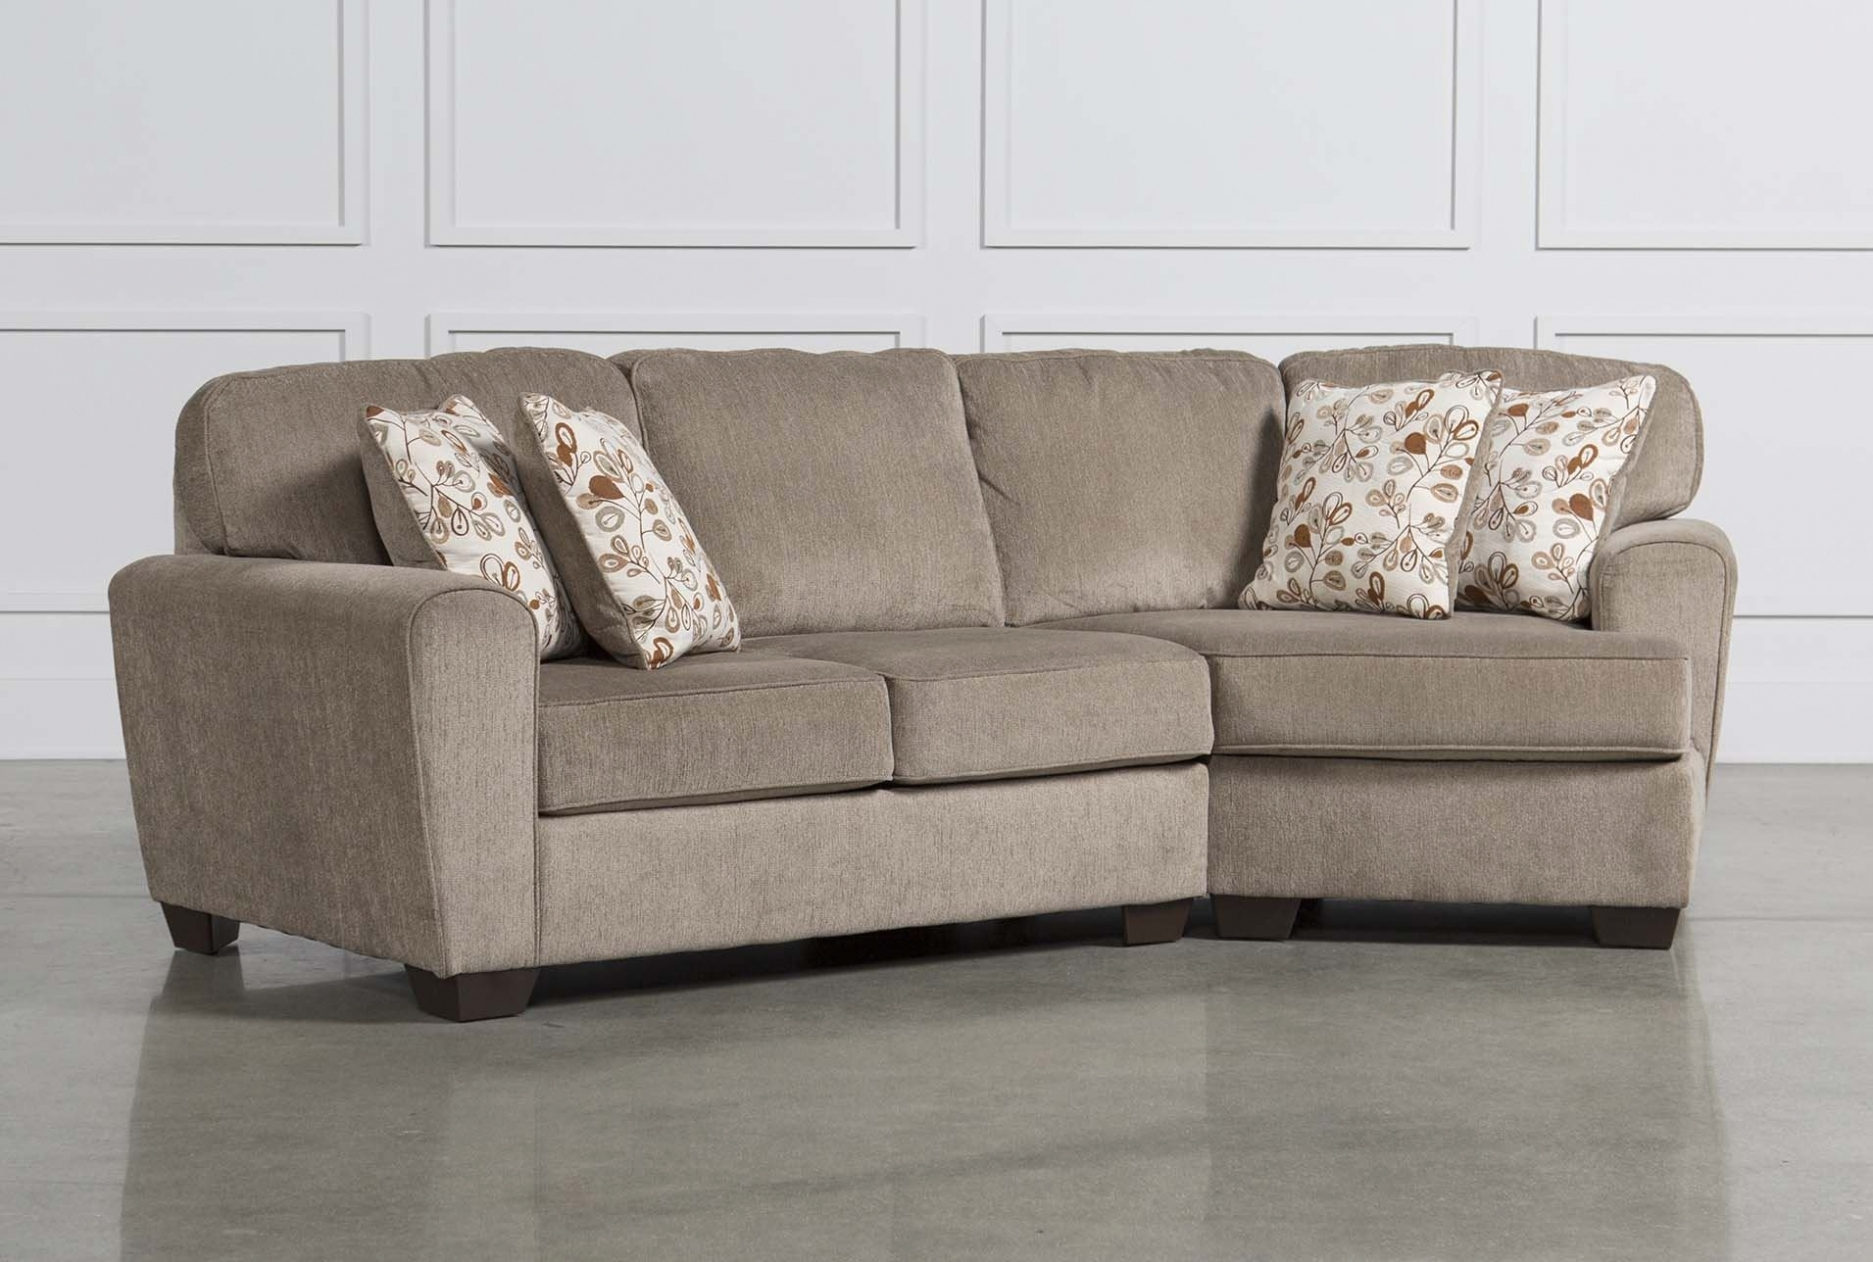 Furniture: Patola Park 4 Piece Sectional W Raf Cuddler Living Spaces Within Sectional Sofas With Cuddler (View 8 of 10)